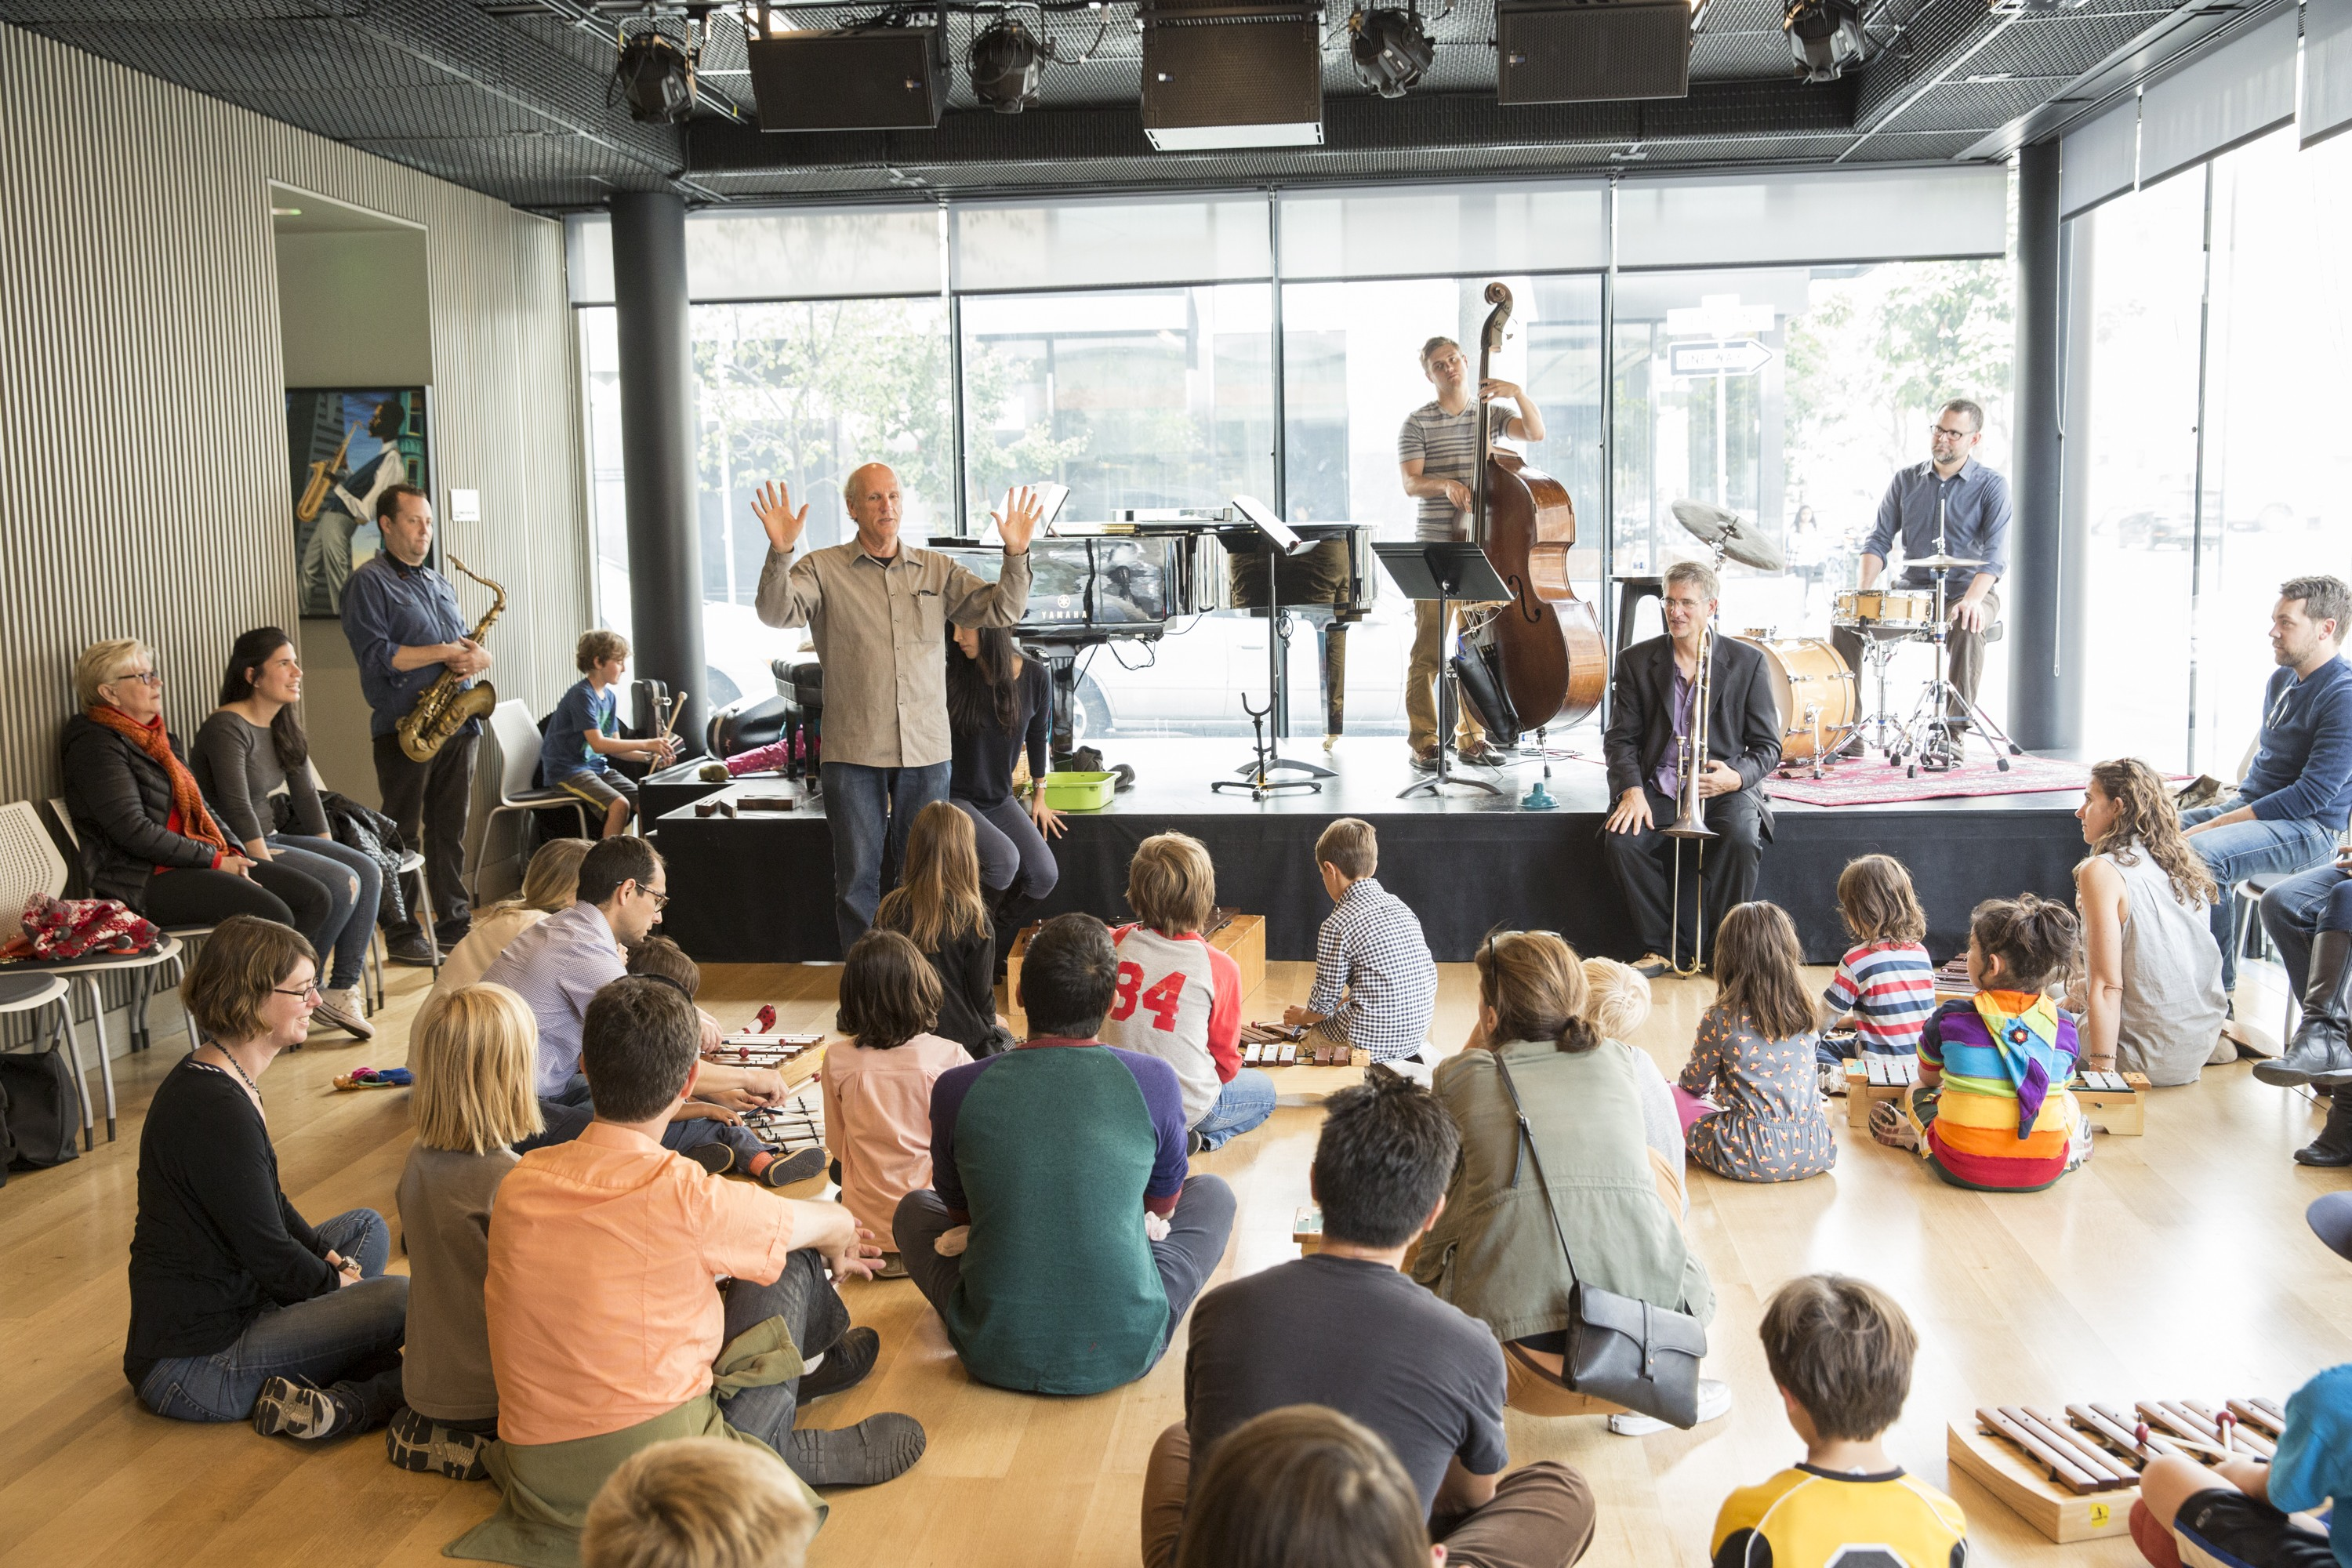 SFJAZZ Family Matinee with the SFJAZZ Collective